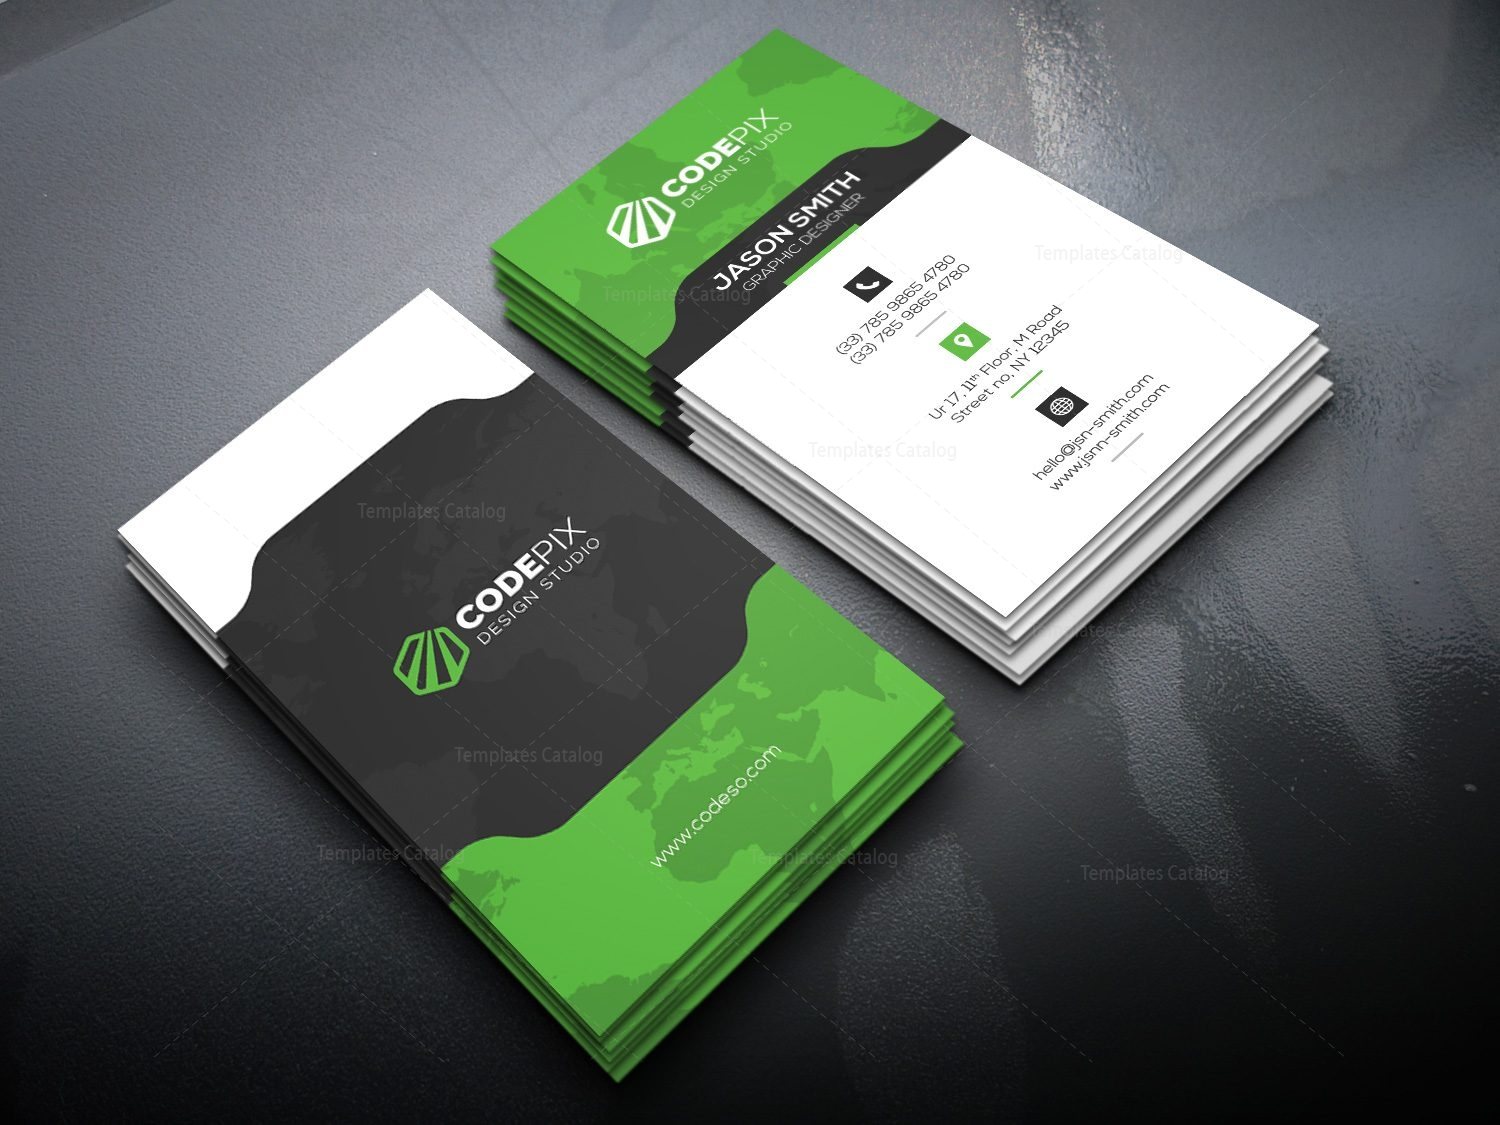 Vertical Business Card With Stylish Design Template Catalog - Business card vertical template